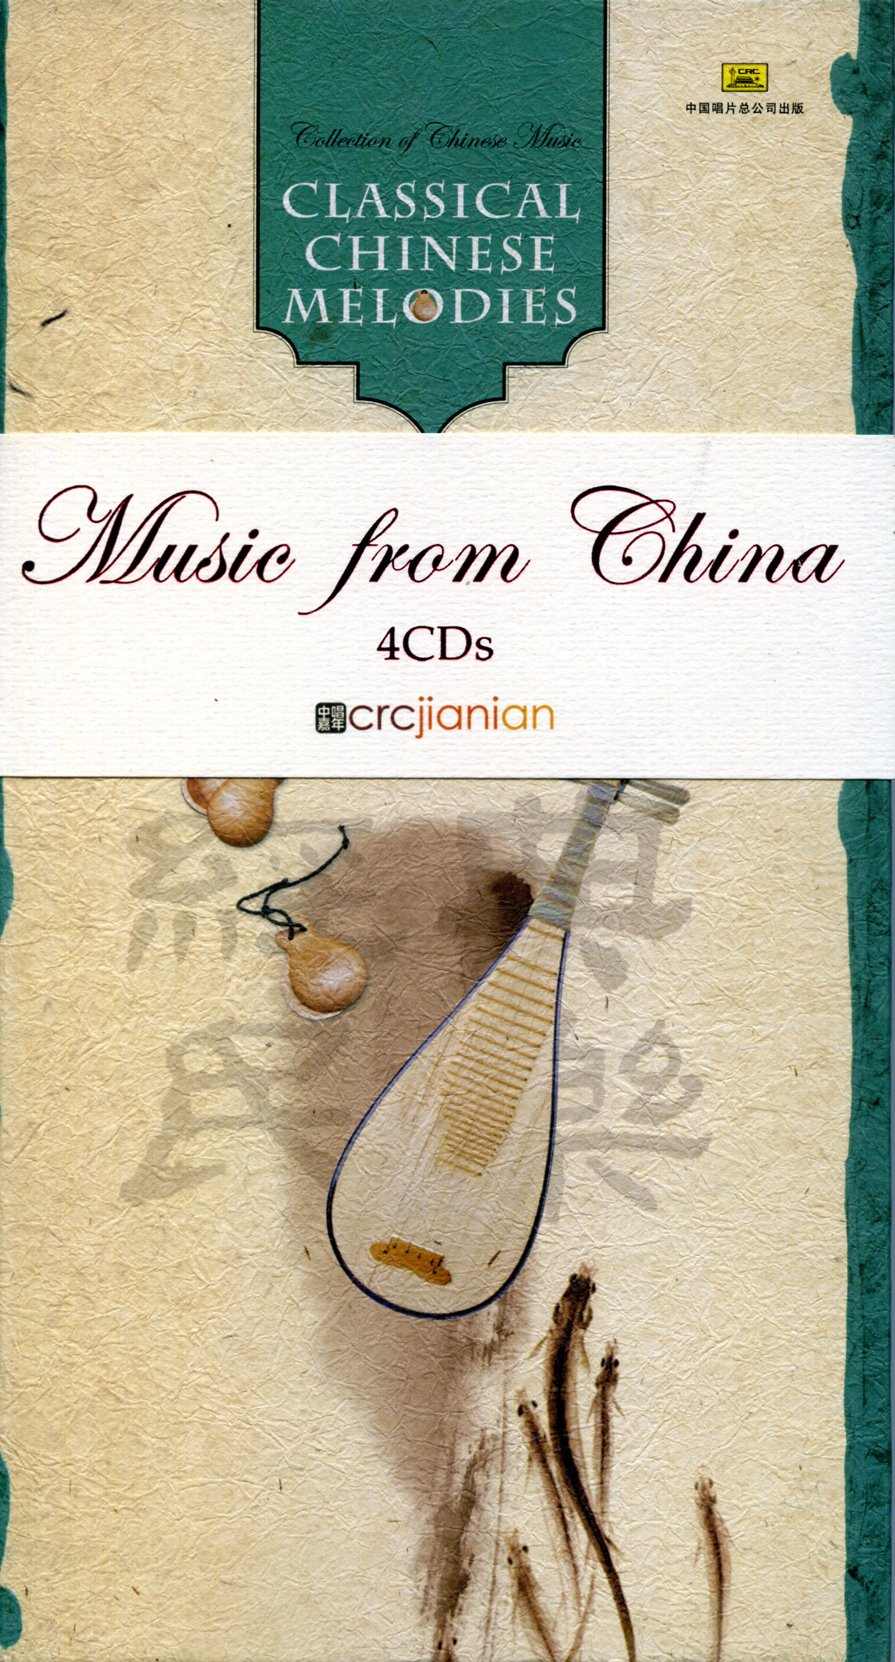 Classical Chinese Melodies by Cinevision Int'l Inc